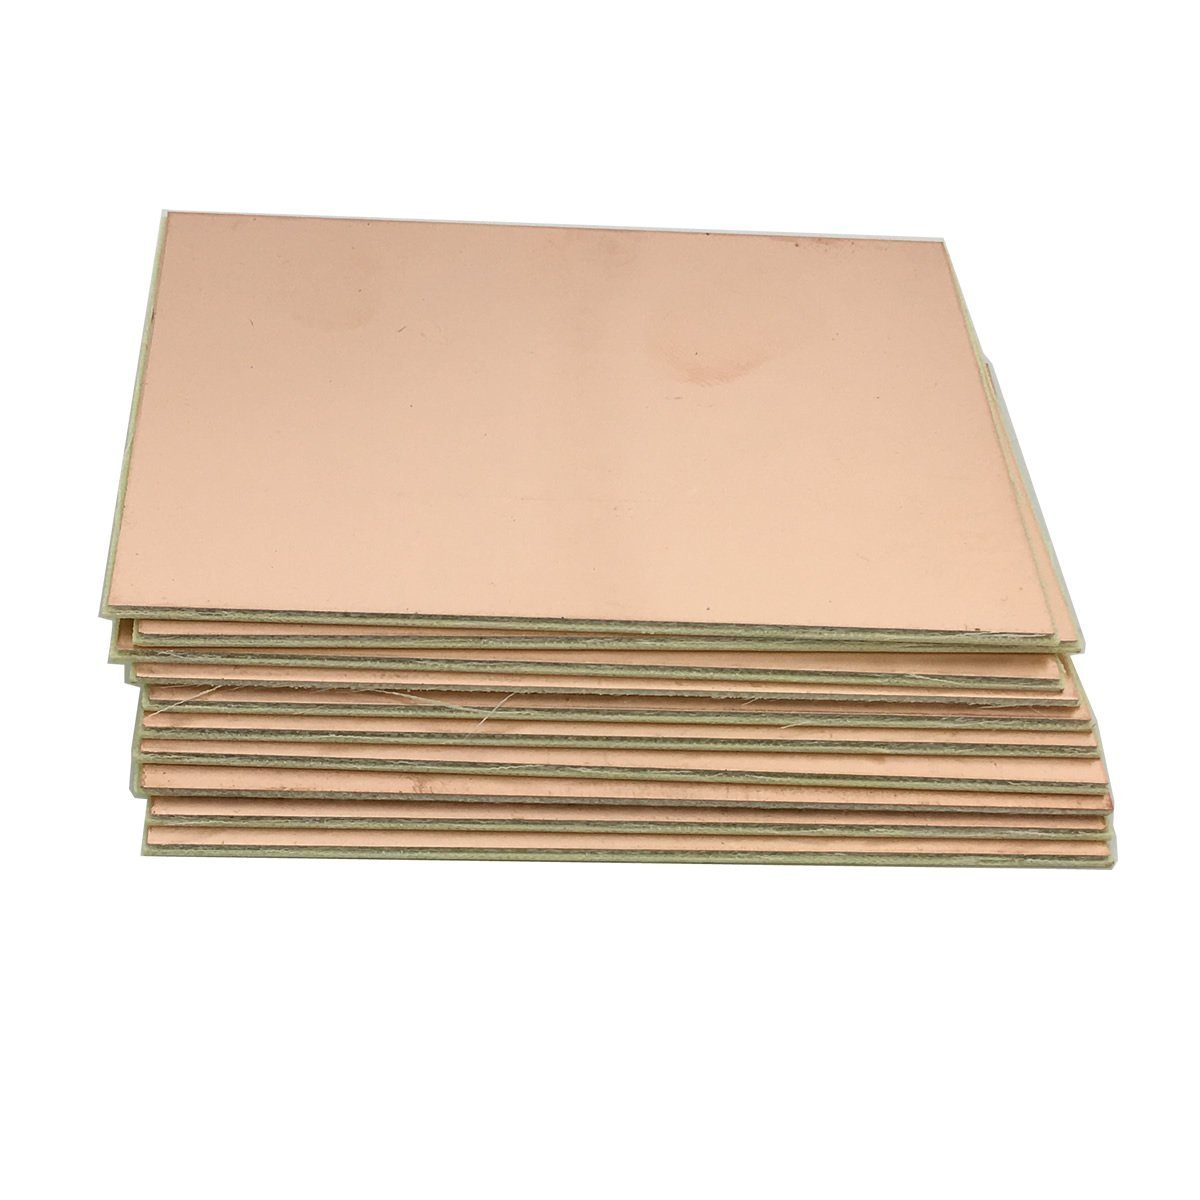 Cheap Copper Board Pcb Find Deals On Line At About 5pcs Copperfibergl Ass Universal Prototype Circuit Mcigicm Clad Pcb10pcs Fr 4 Single Side Plate